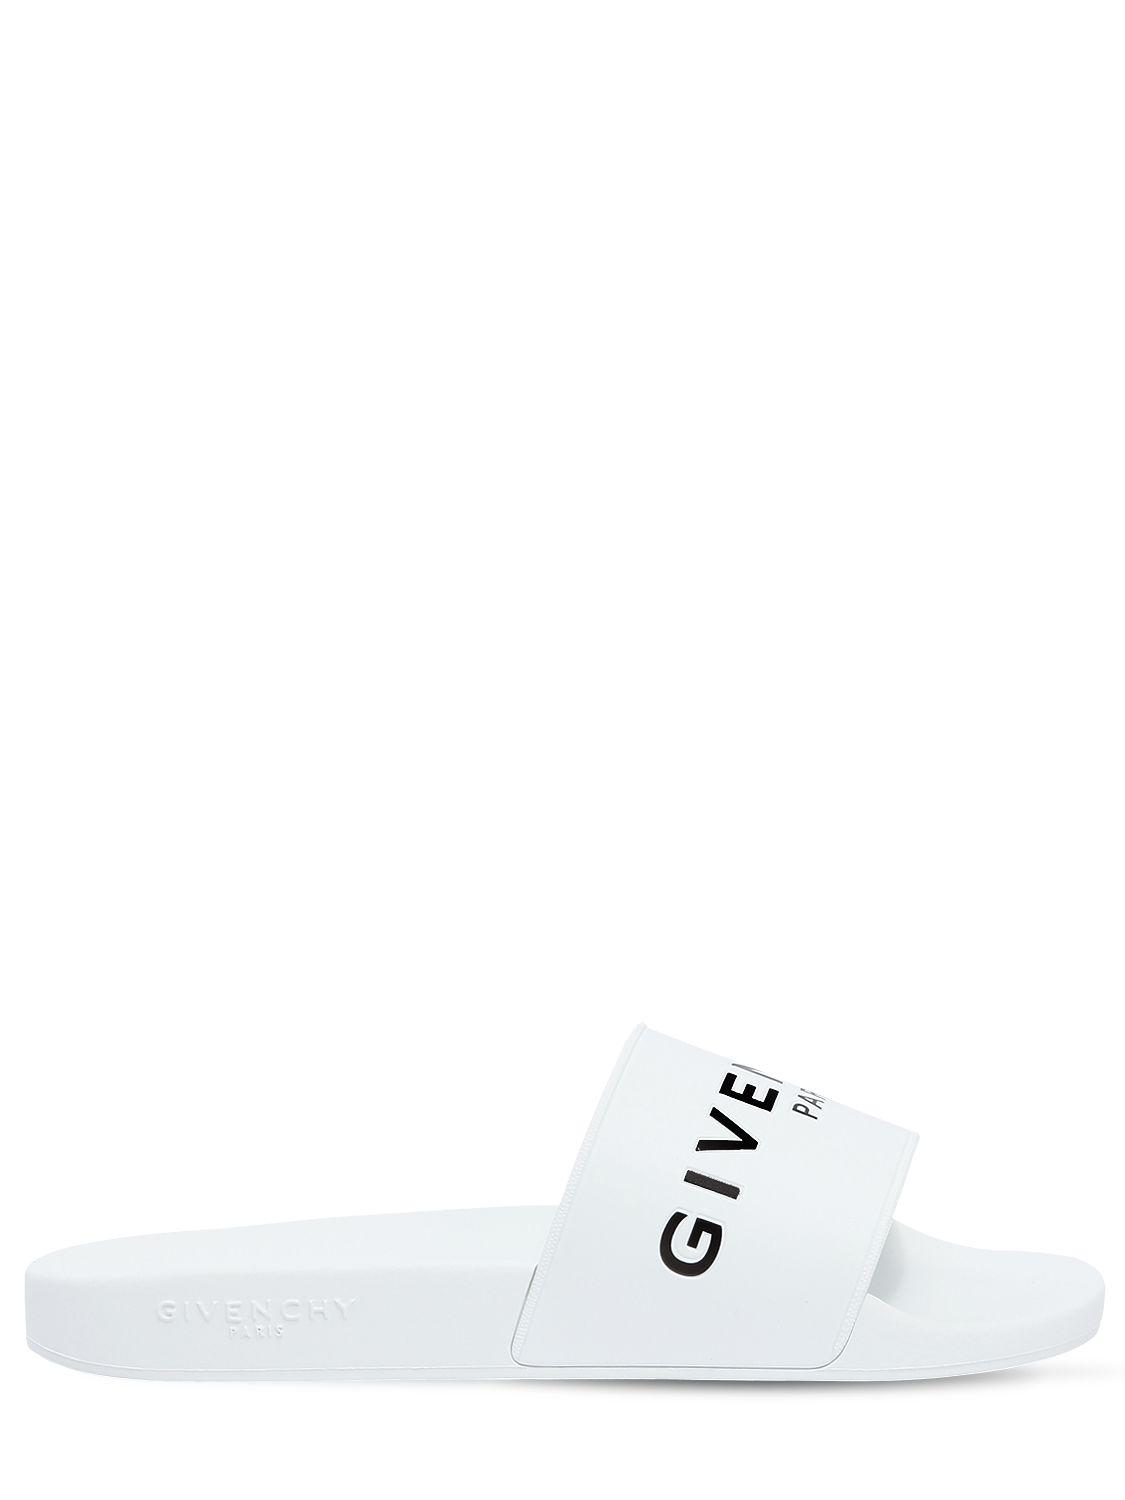 9dff44b3ec162 Lyst - Givenchy Slide Logo Rubber Slide Sandals in White for Men